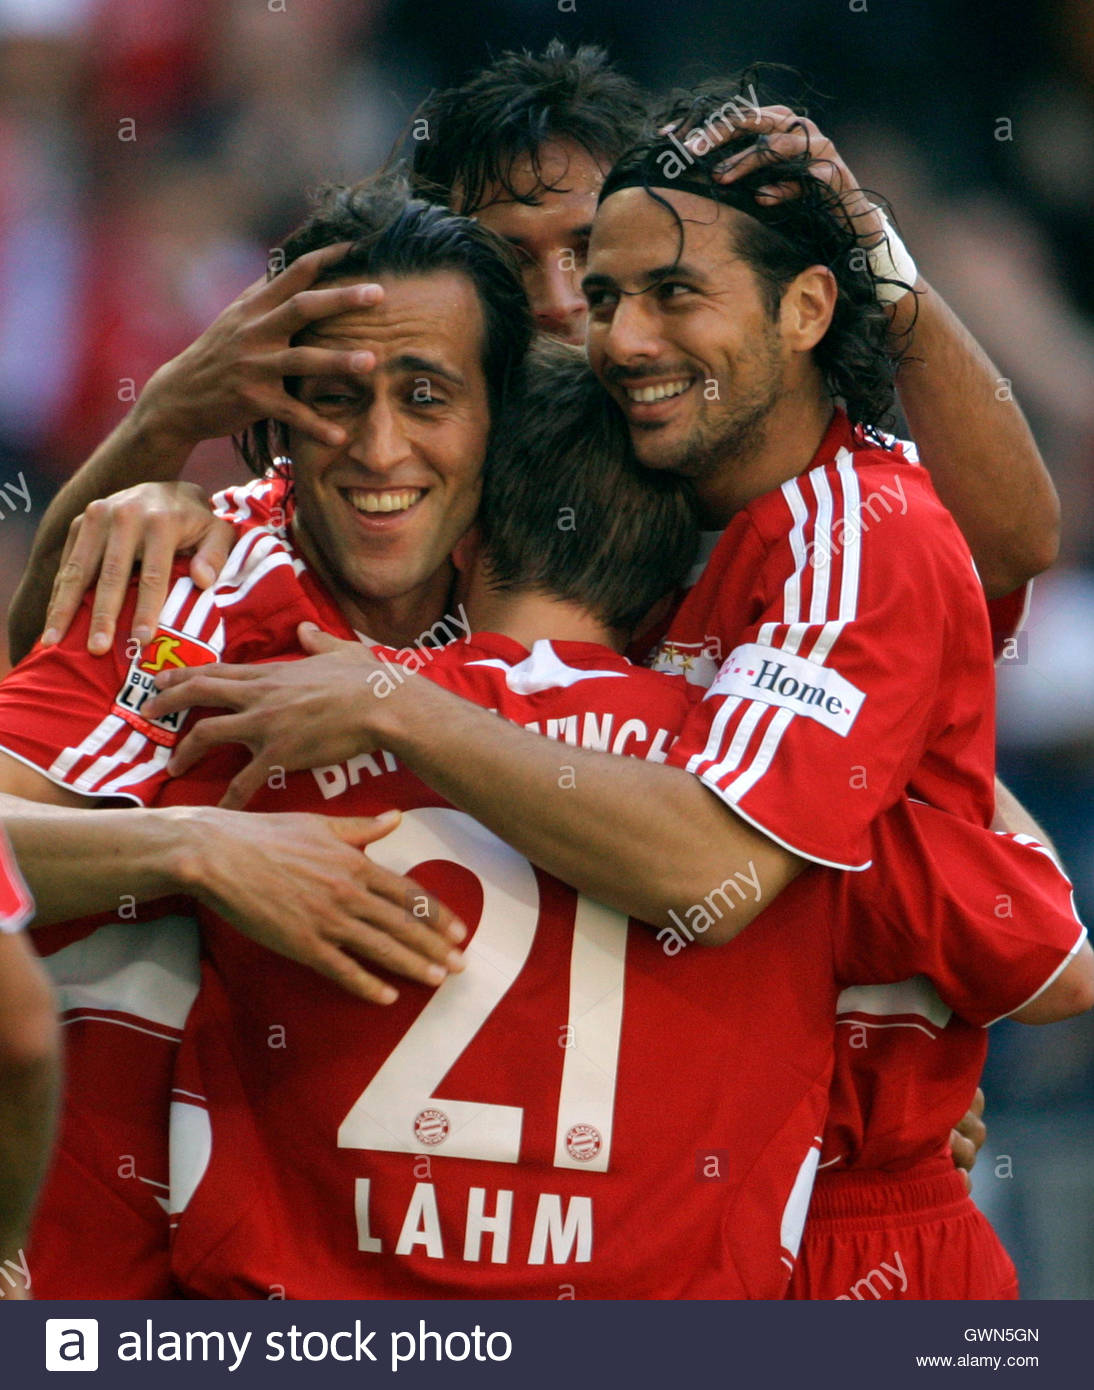 karimi stock photos karimi stock images page alamy bayern munich s ali karimi l philipp lahm claudio pizarro r and